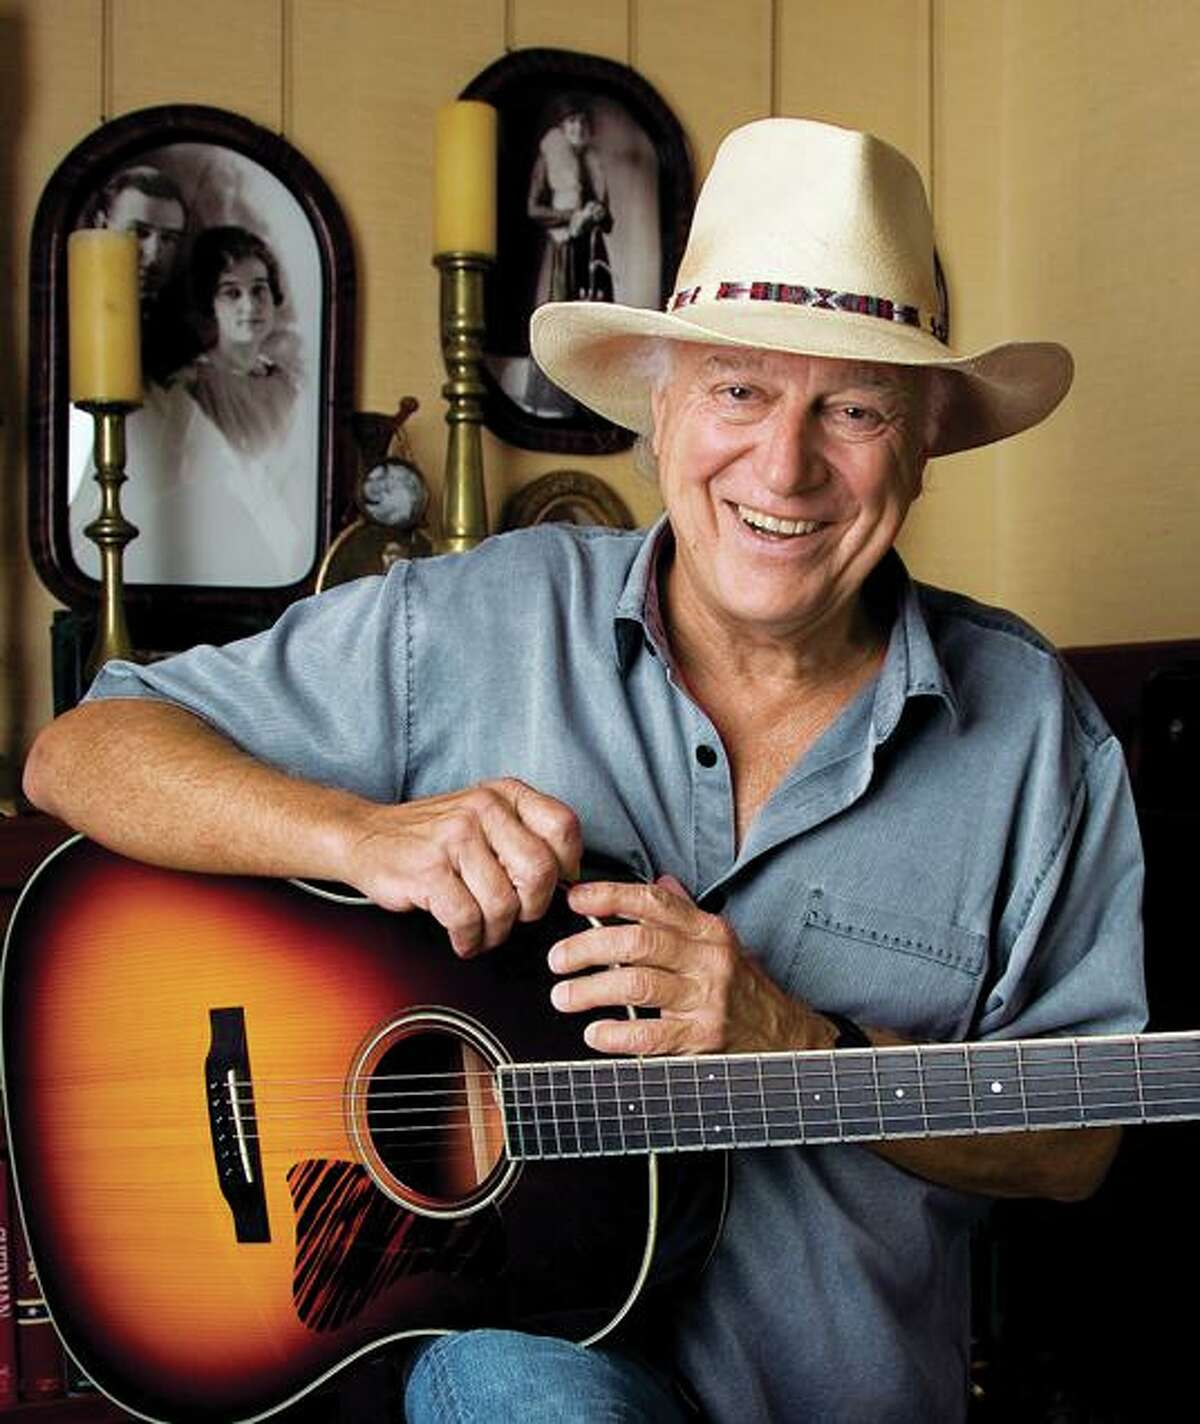 Rest in peace, Jerry Jeff, a Texas outlaw.